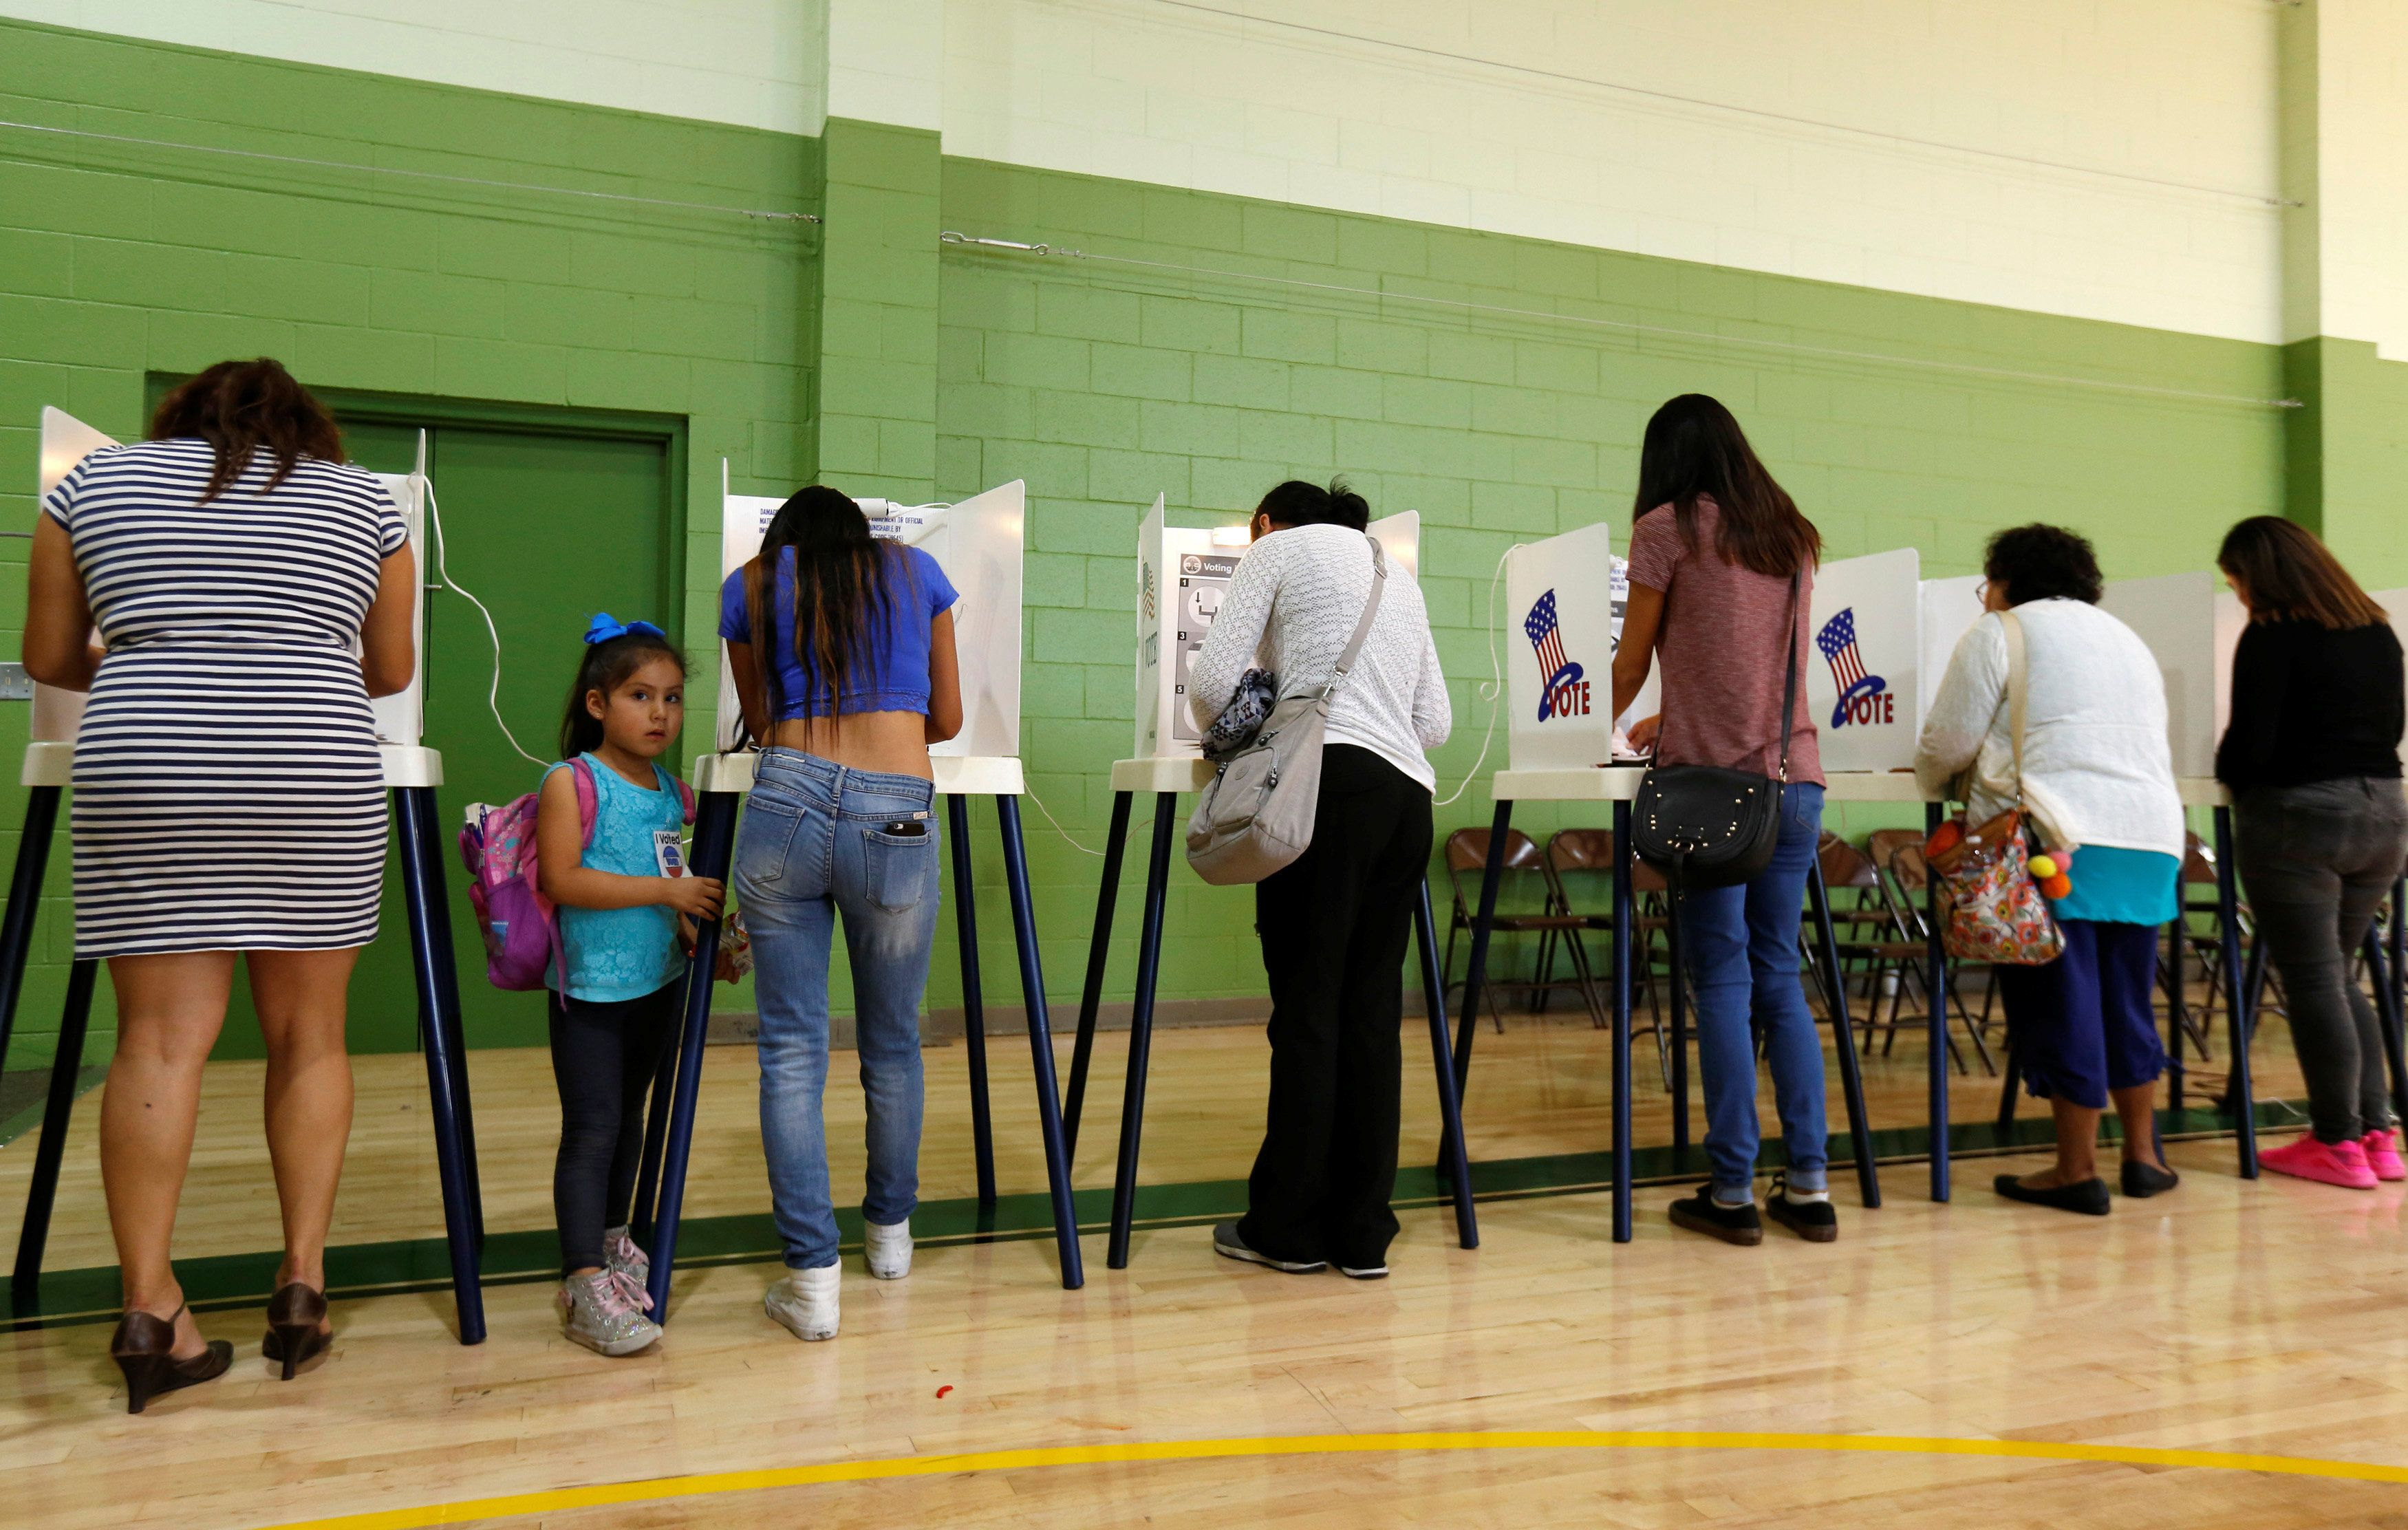 Brisa Silva stands next to her mother, Cinthia Lopez, as she votes at the Evergreen Recreation Center during the presidential